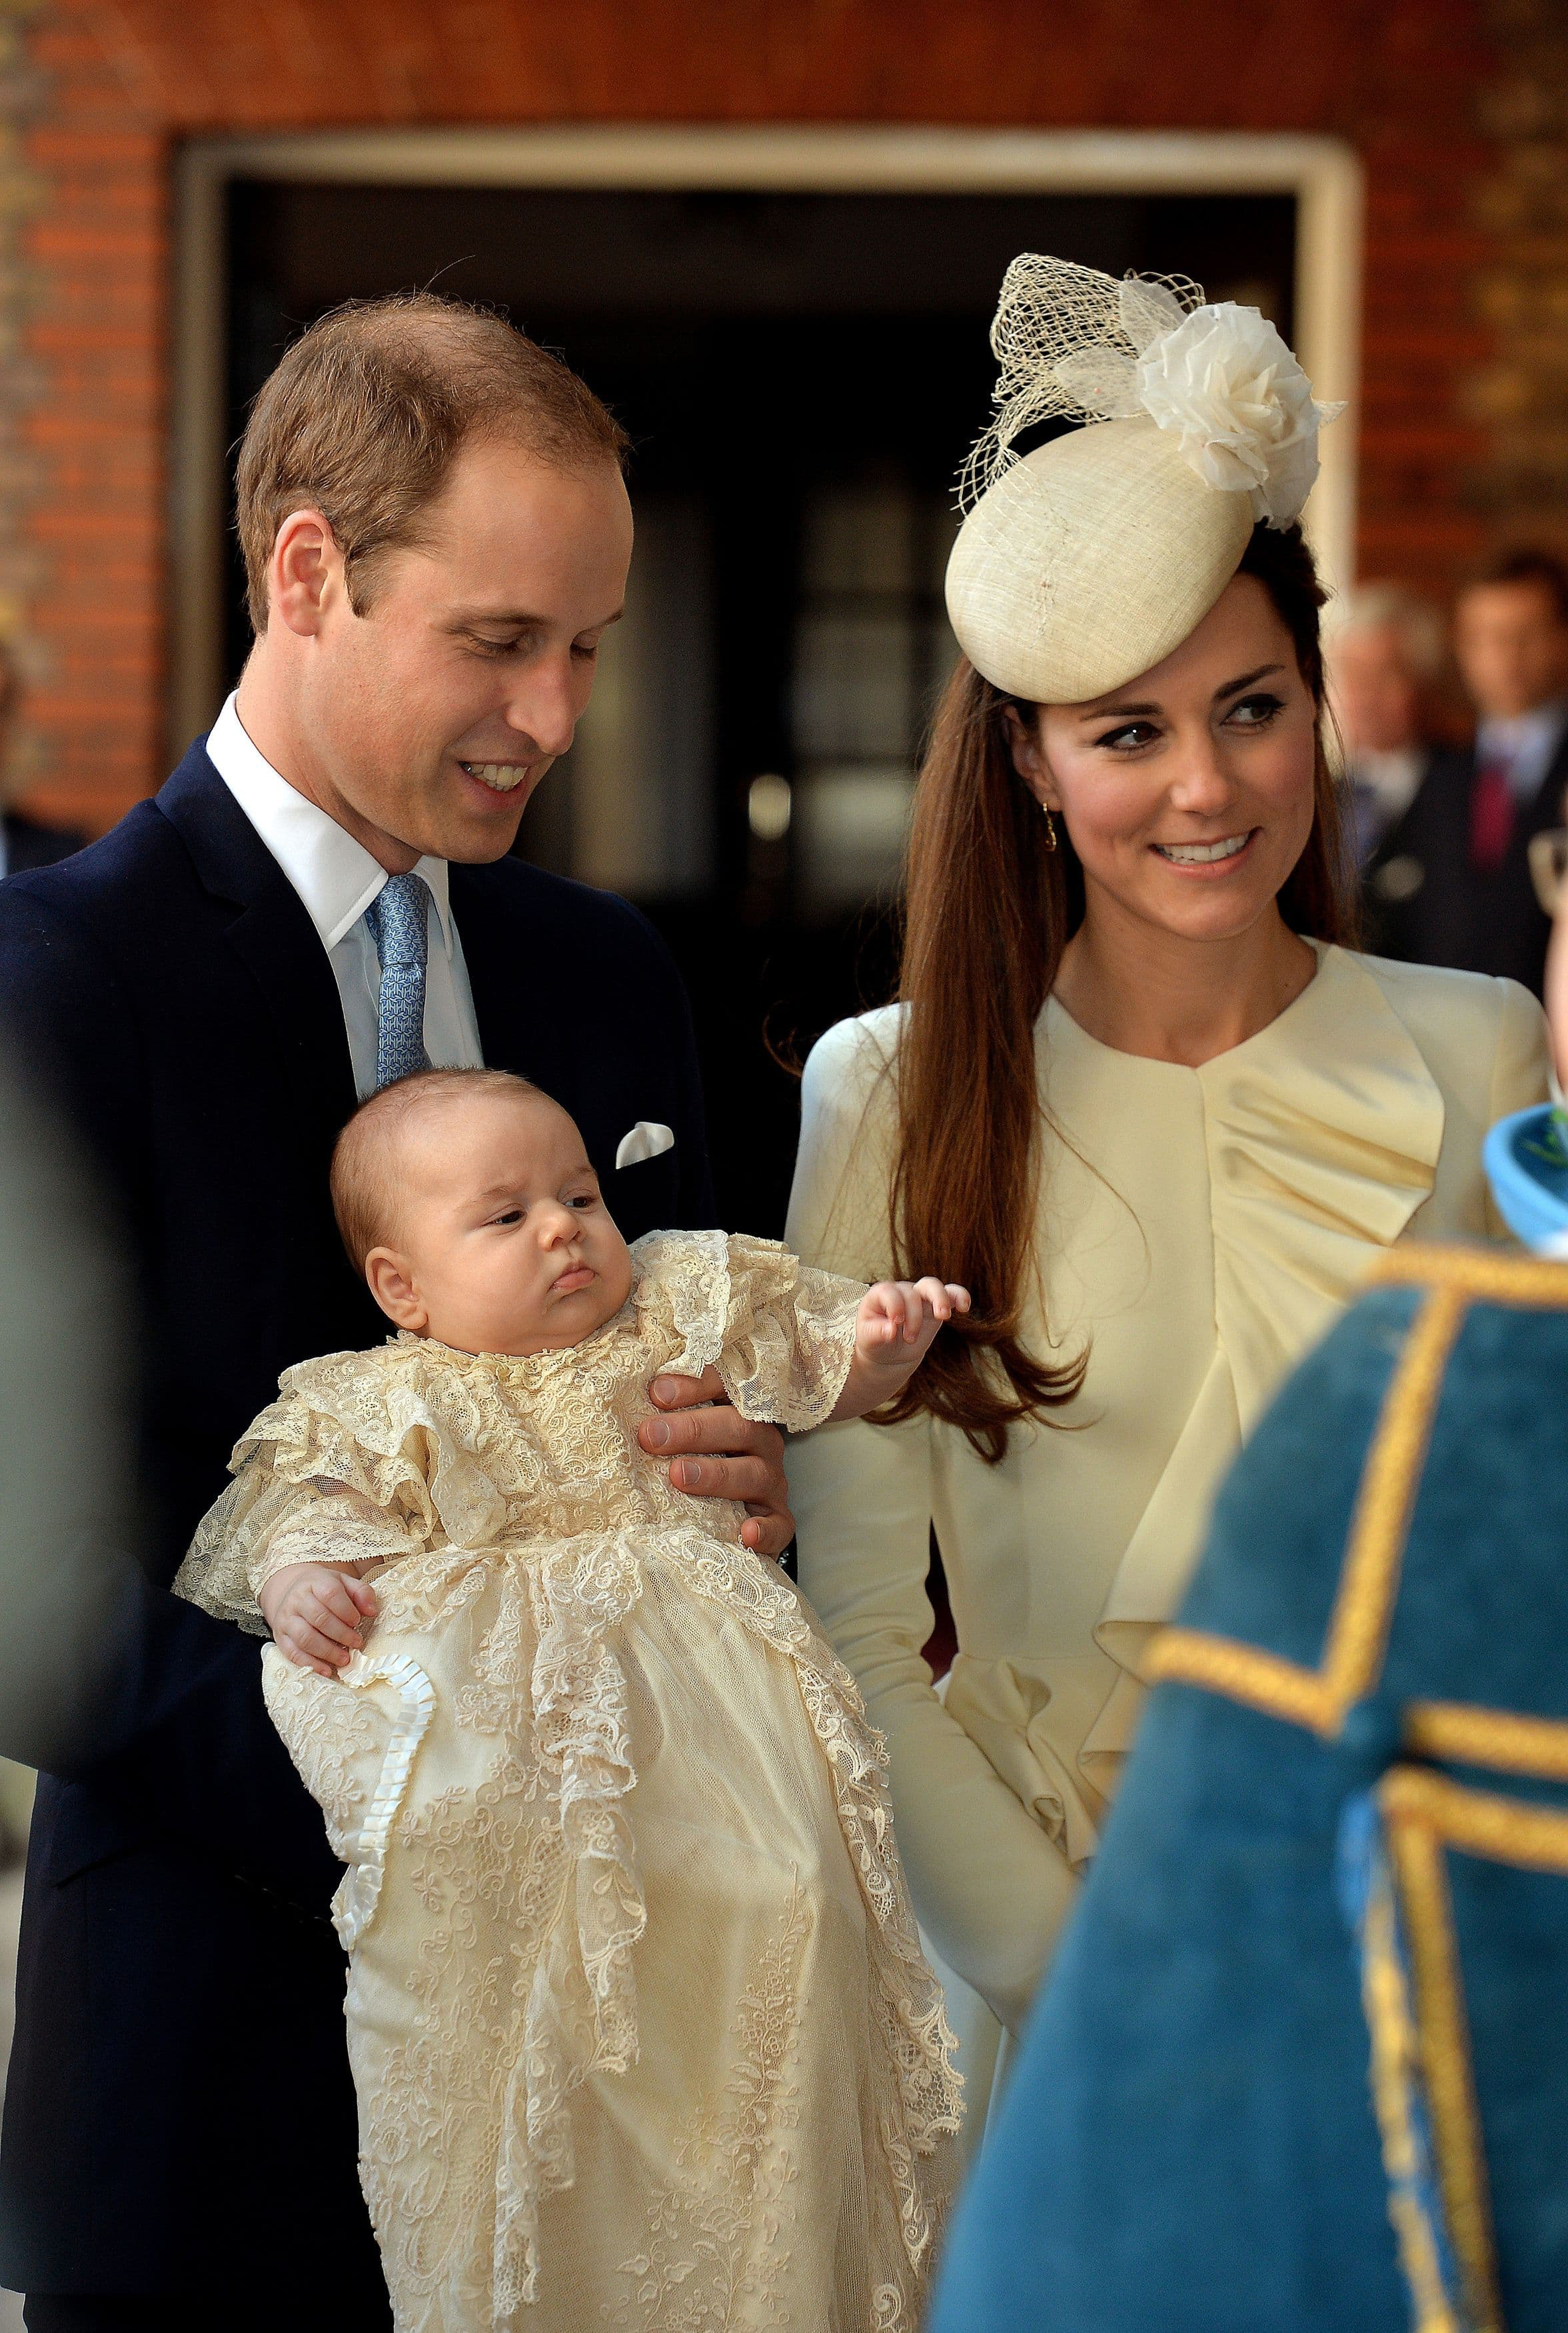 Kate Middleton and Prince William with Prince George at his christening